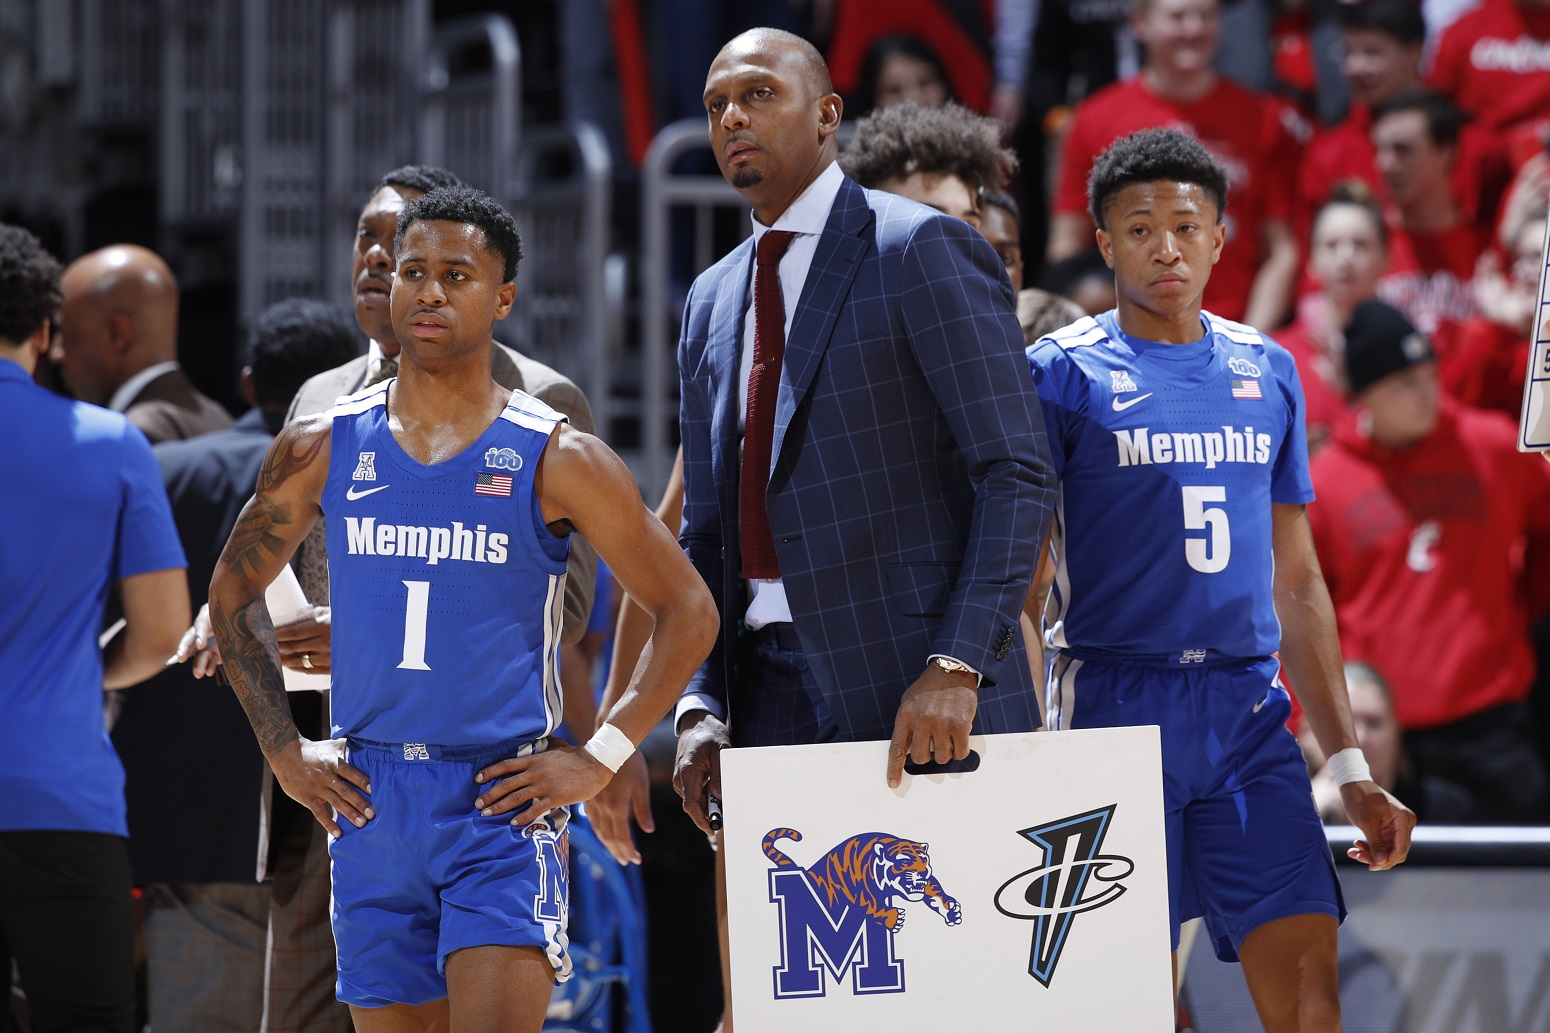 Penny Hardaway's Coaching Led to an Attempted Murder Charge